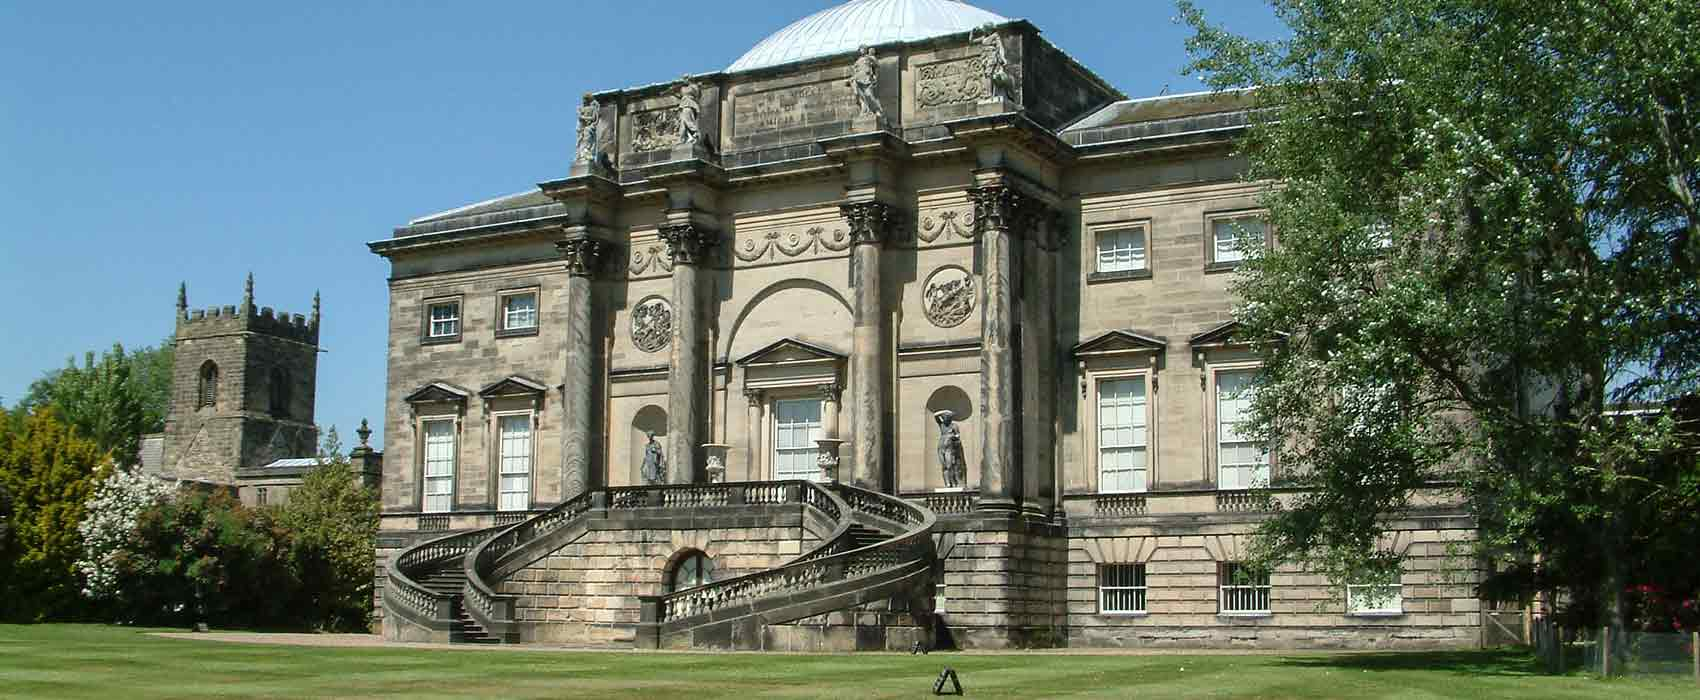 Kedleston-Hall-Rear-View